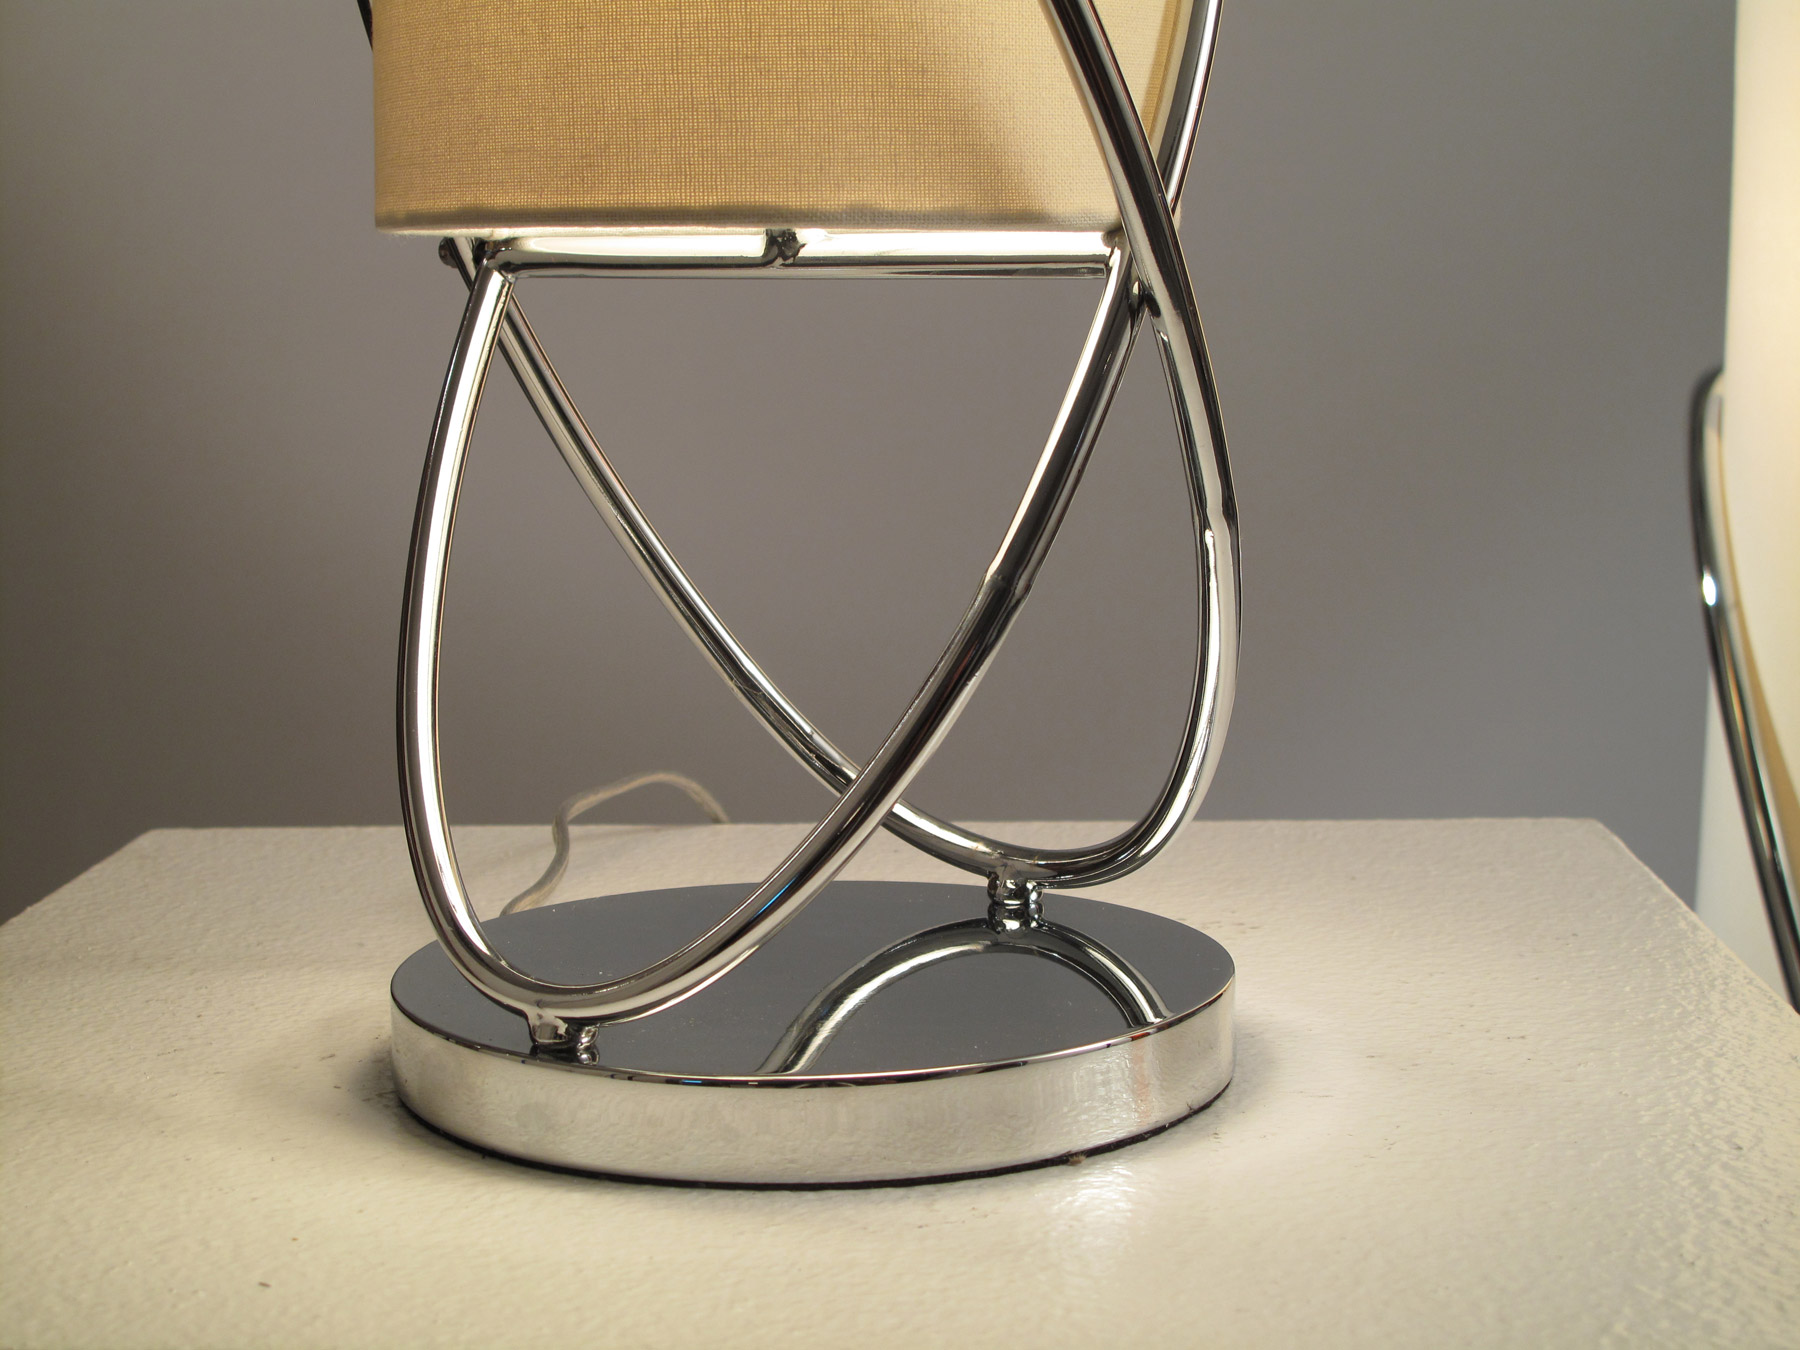 Nova Lighting 11189 Internal Table Lamp